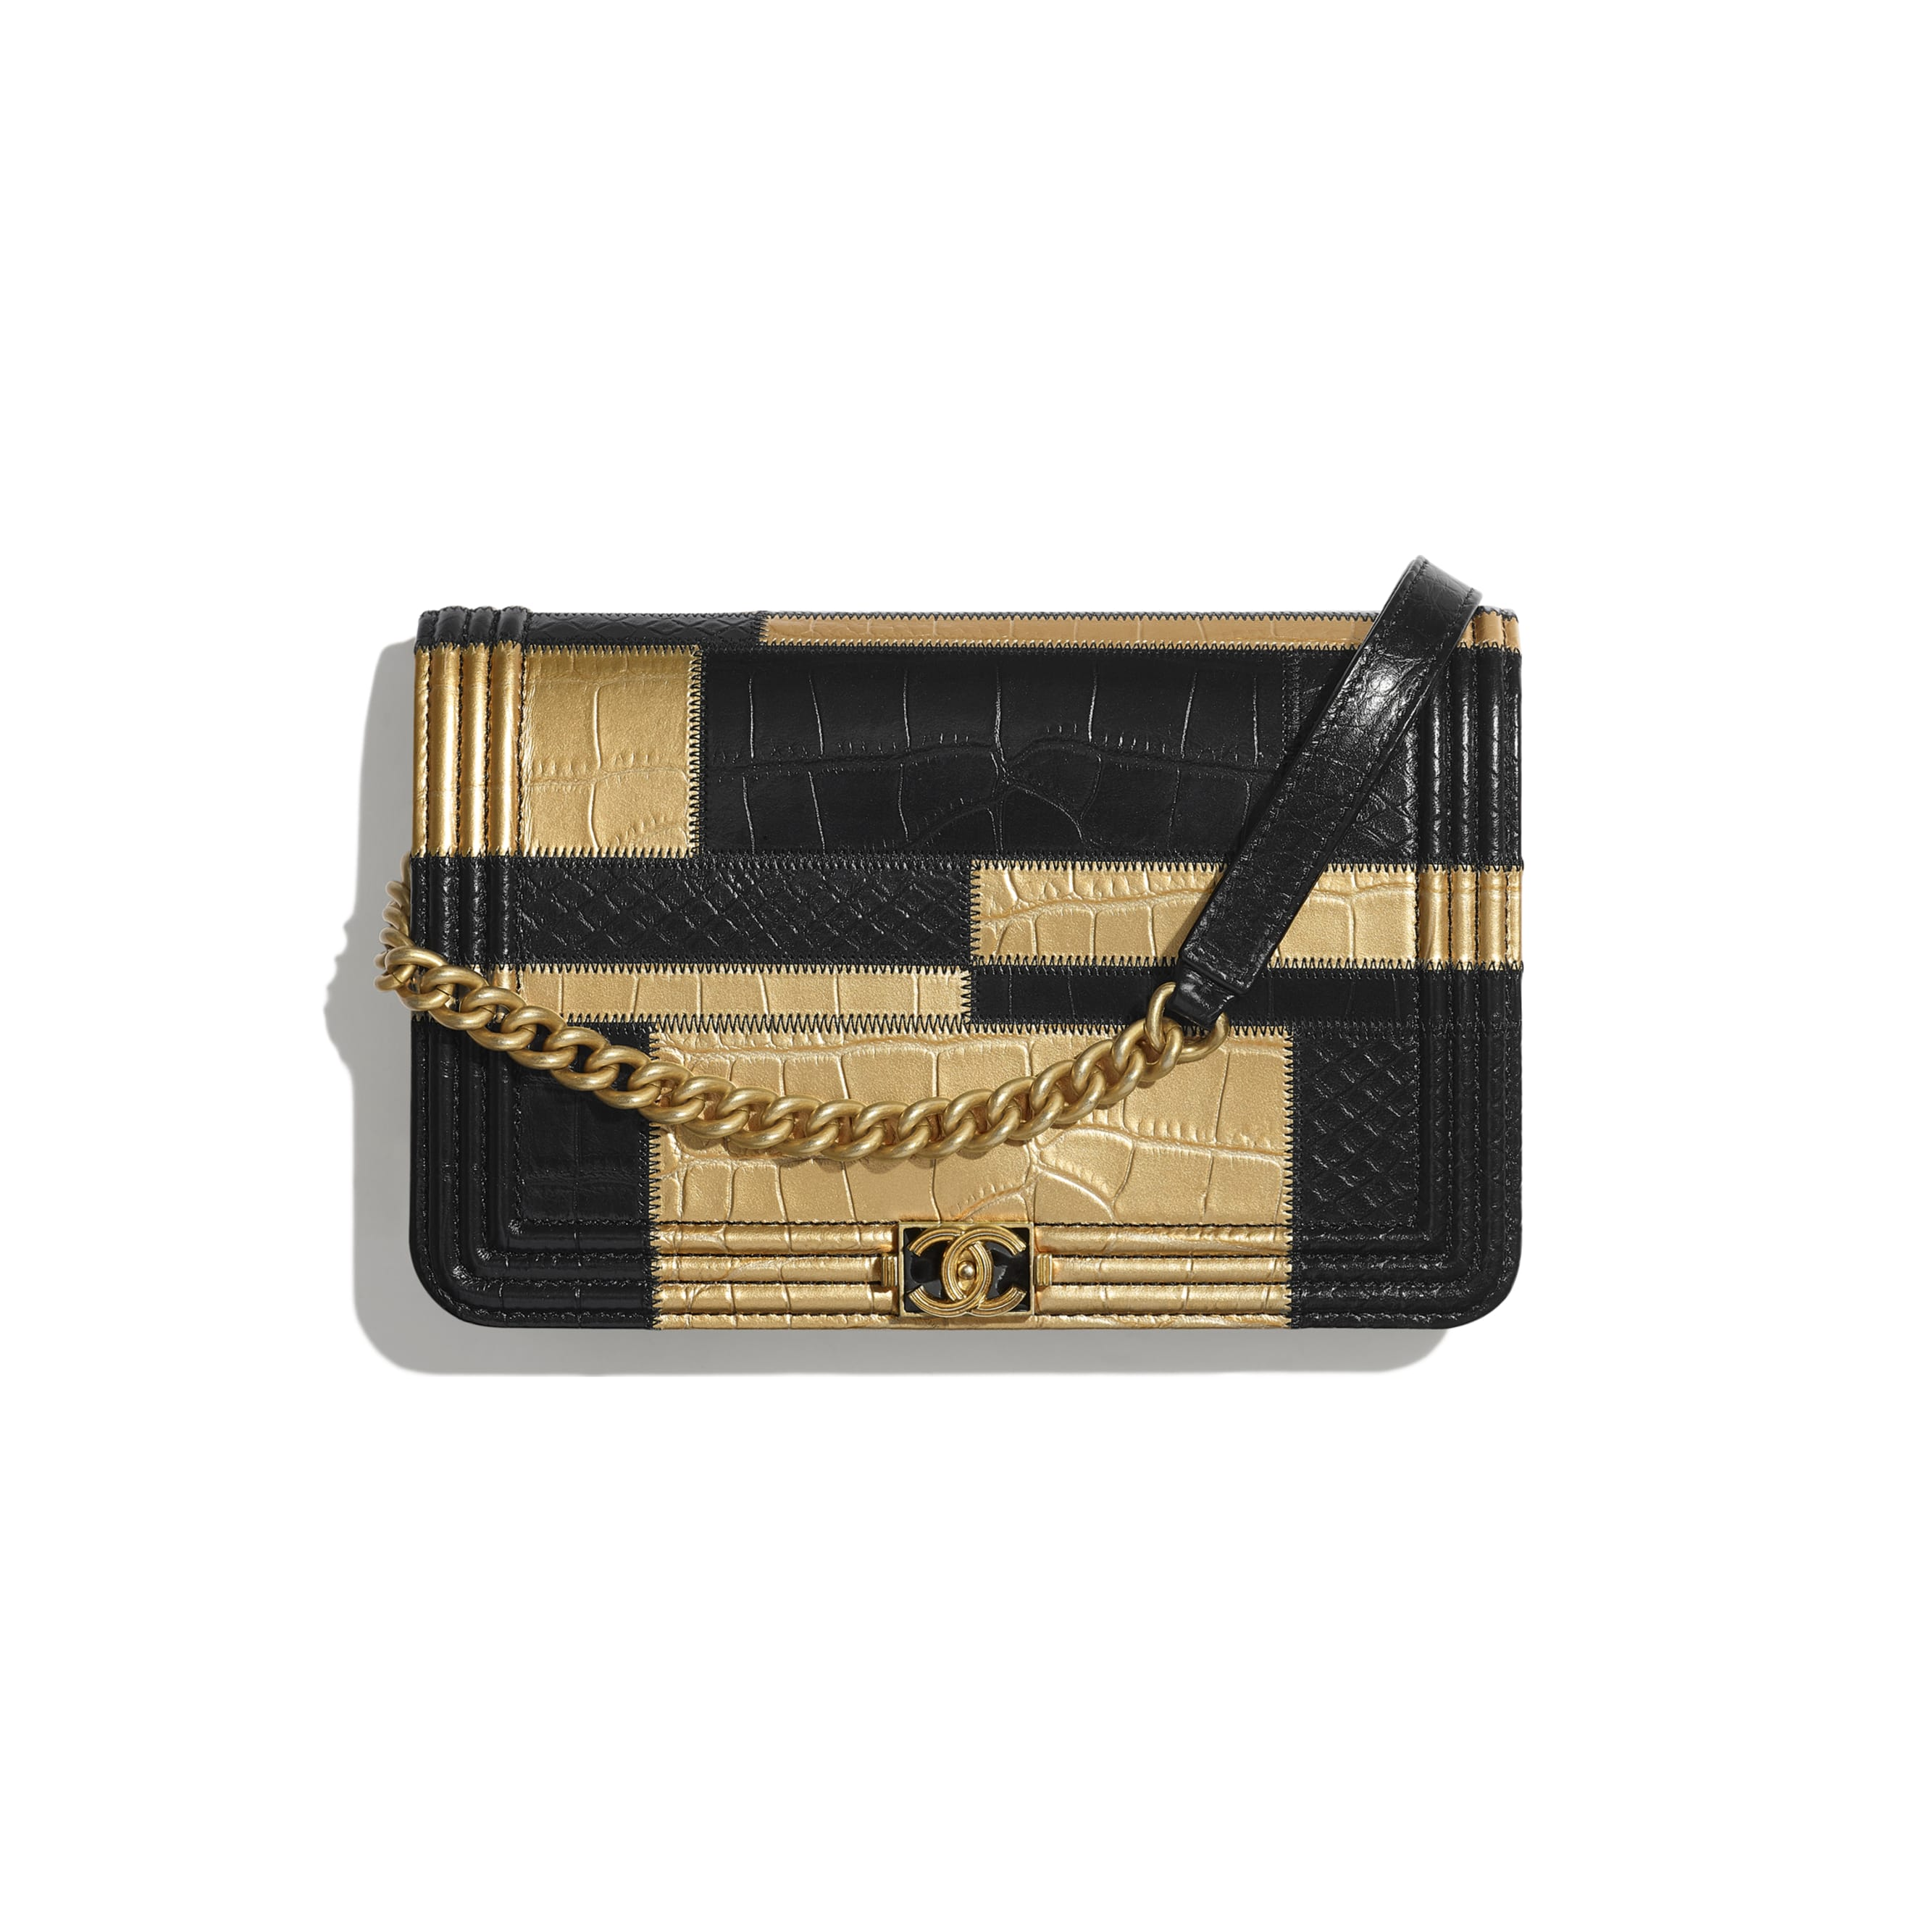 BOY CHANEL Wallet on Chain - Black & Gold - Crocodile Embossed Calfskin, Python Embossed Calfskin & Gold-Tone Metal - Default view - see standard sized version